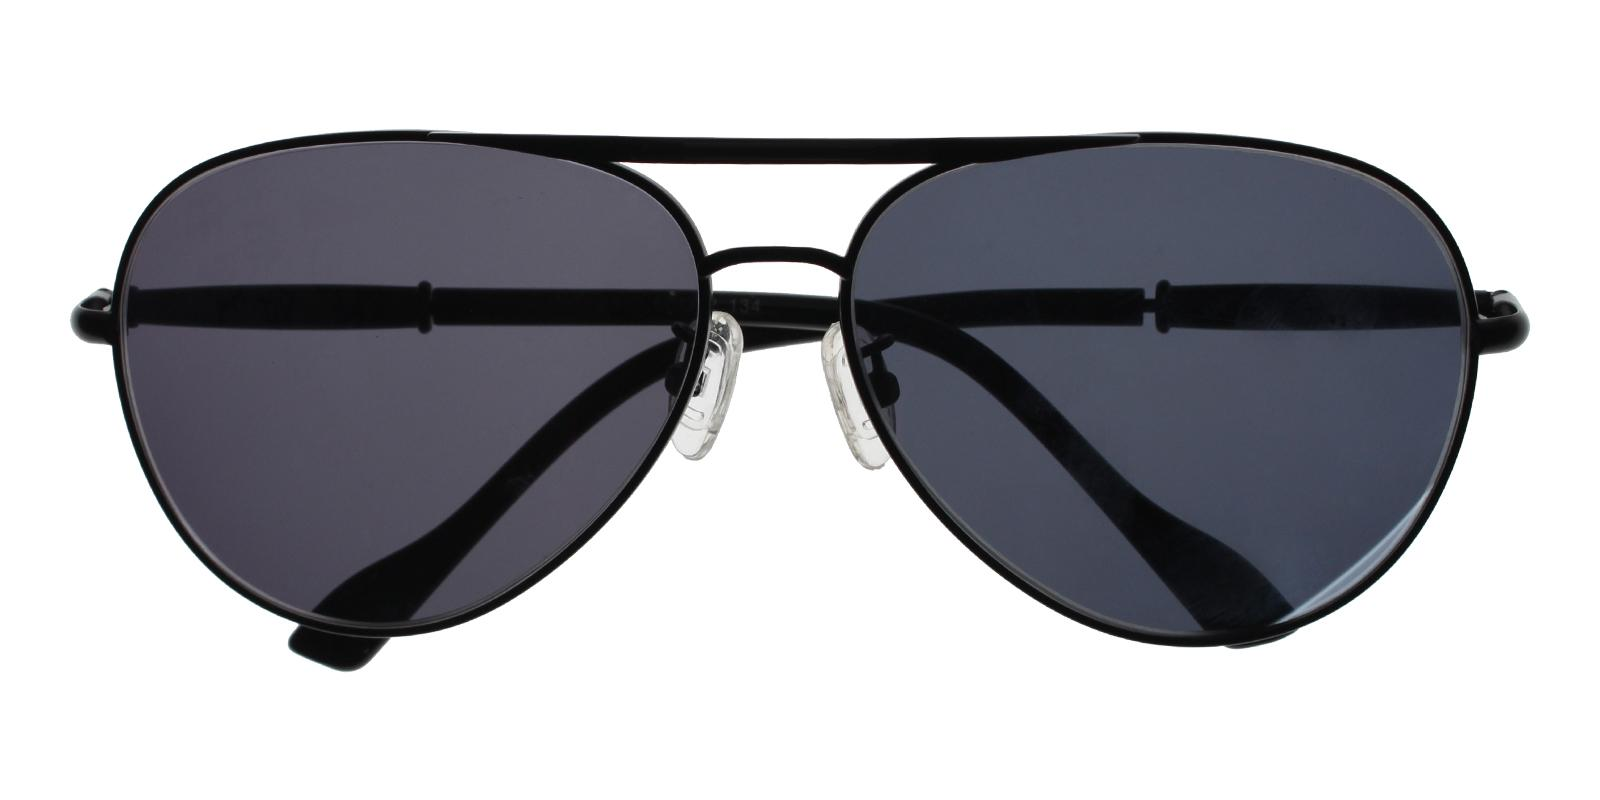 Edie Black Metal NosePads , Sunglasses Frames from ABBE Glasses